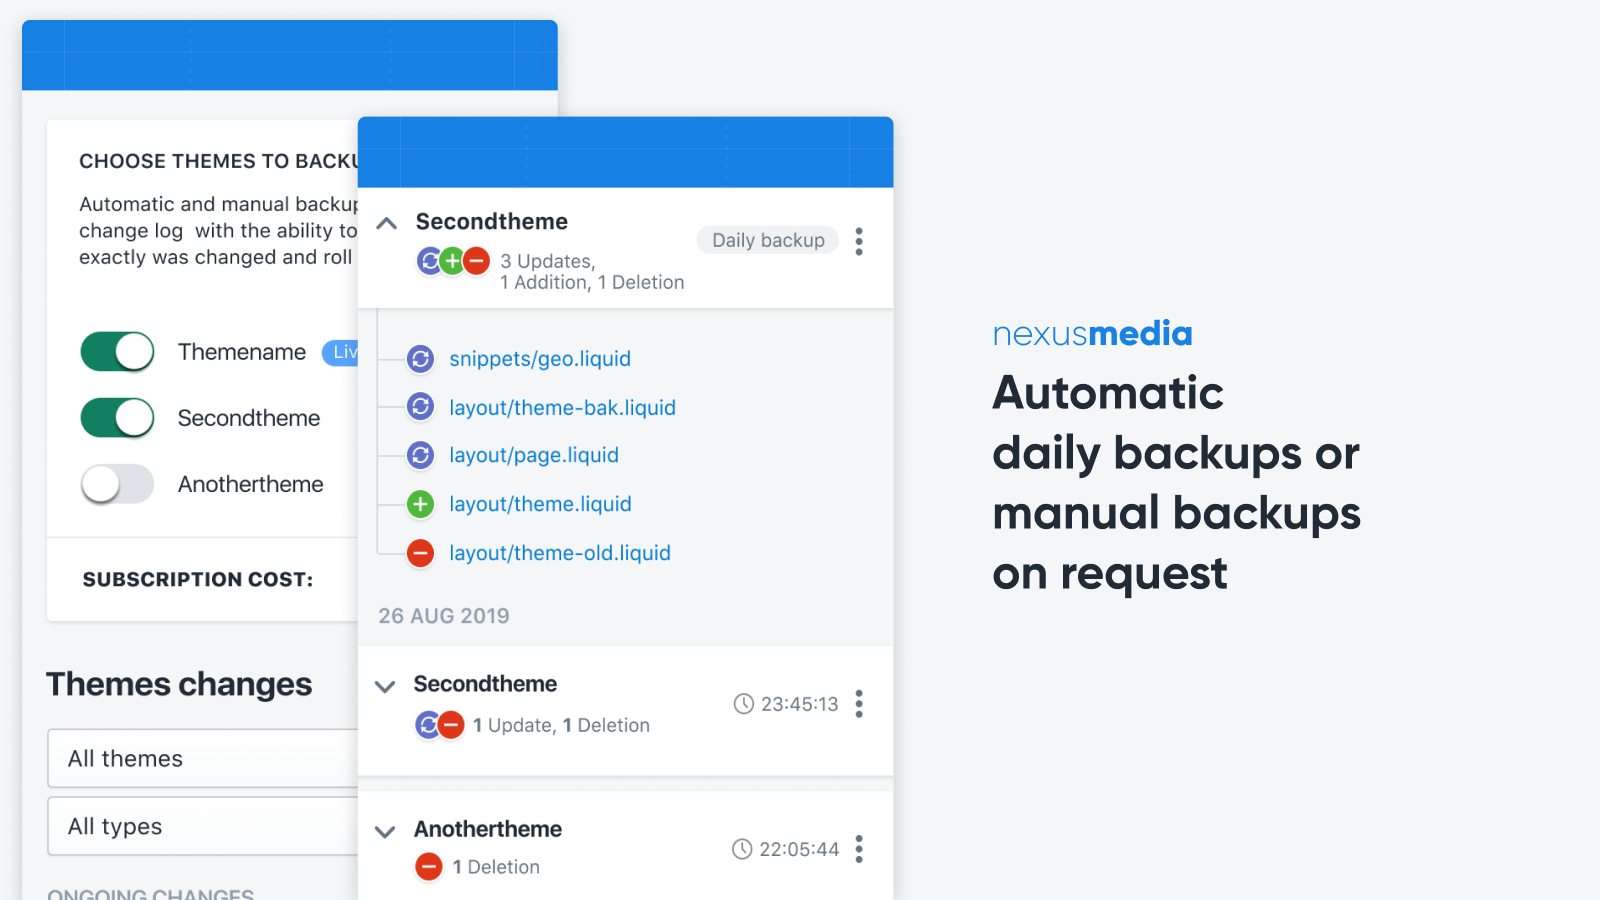 Automatic daily backups or manual backups on request